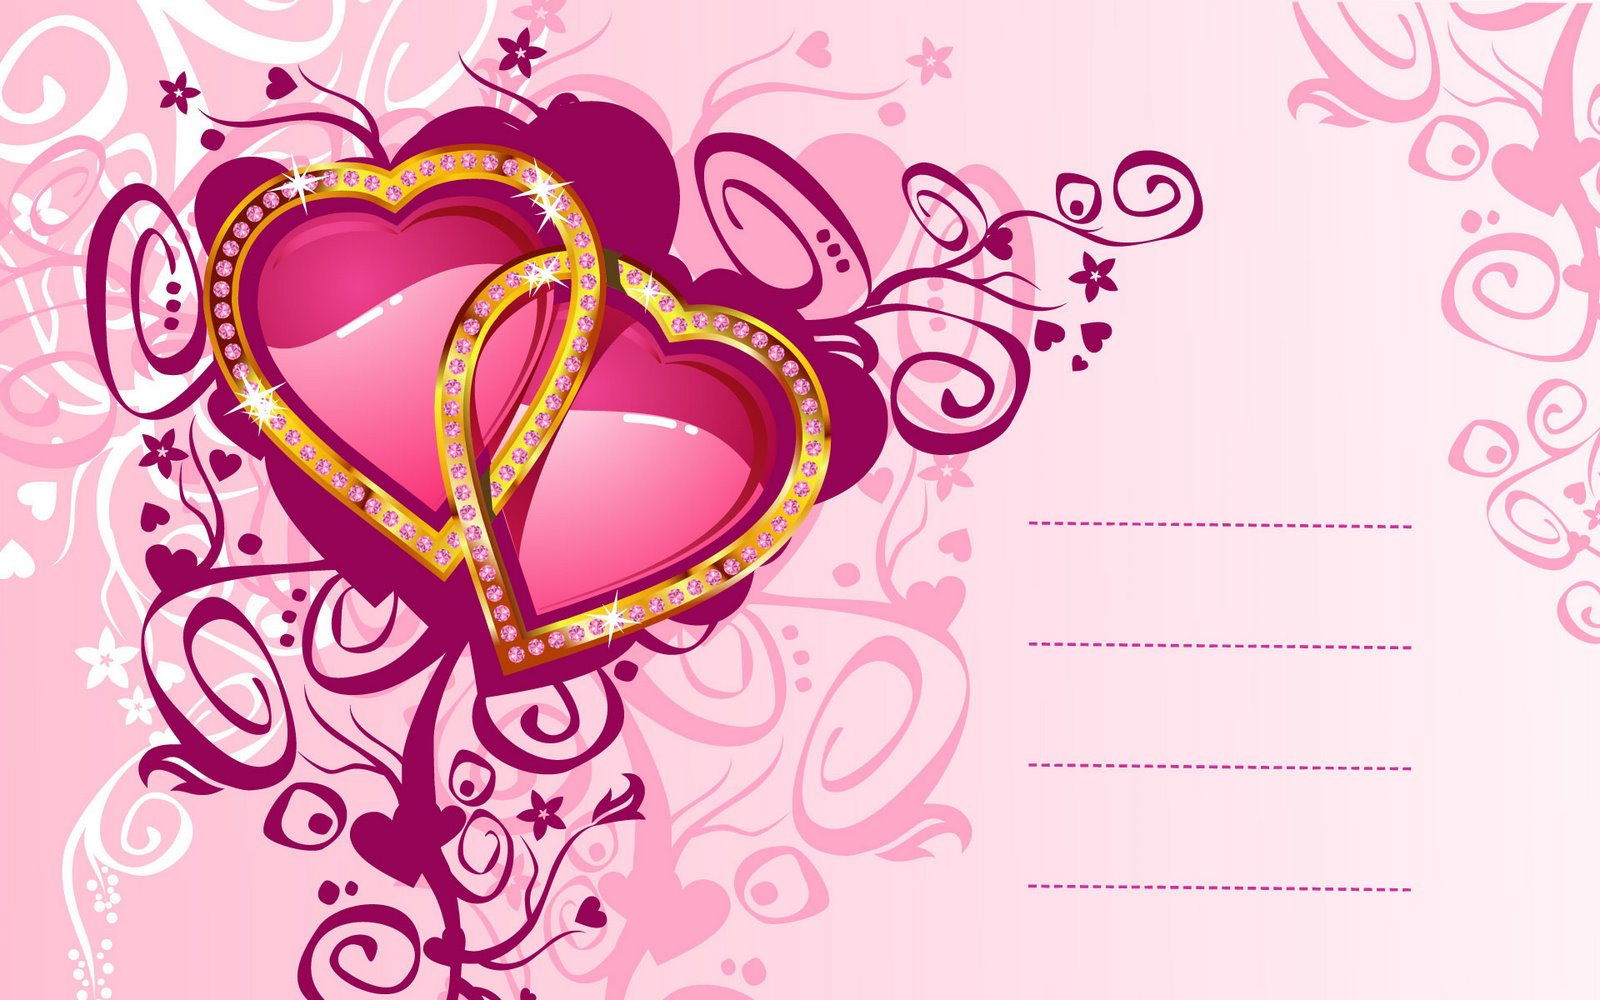 True Love Wallpapers Romantic Backgrounds Hearts Animated Love Wallpaper